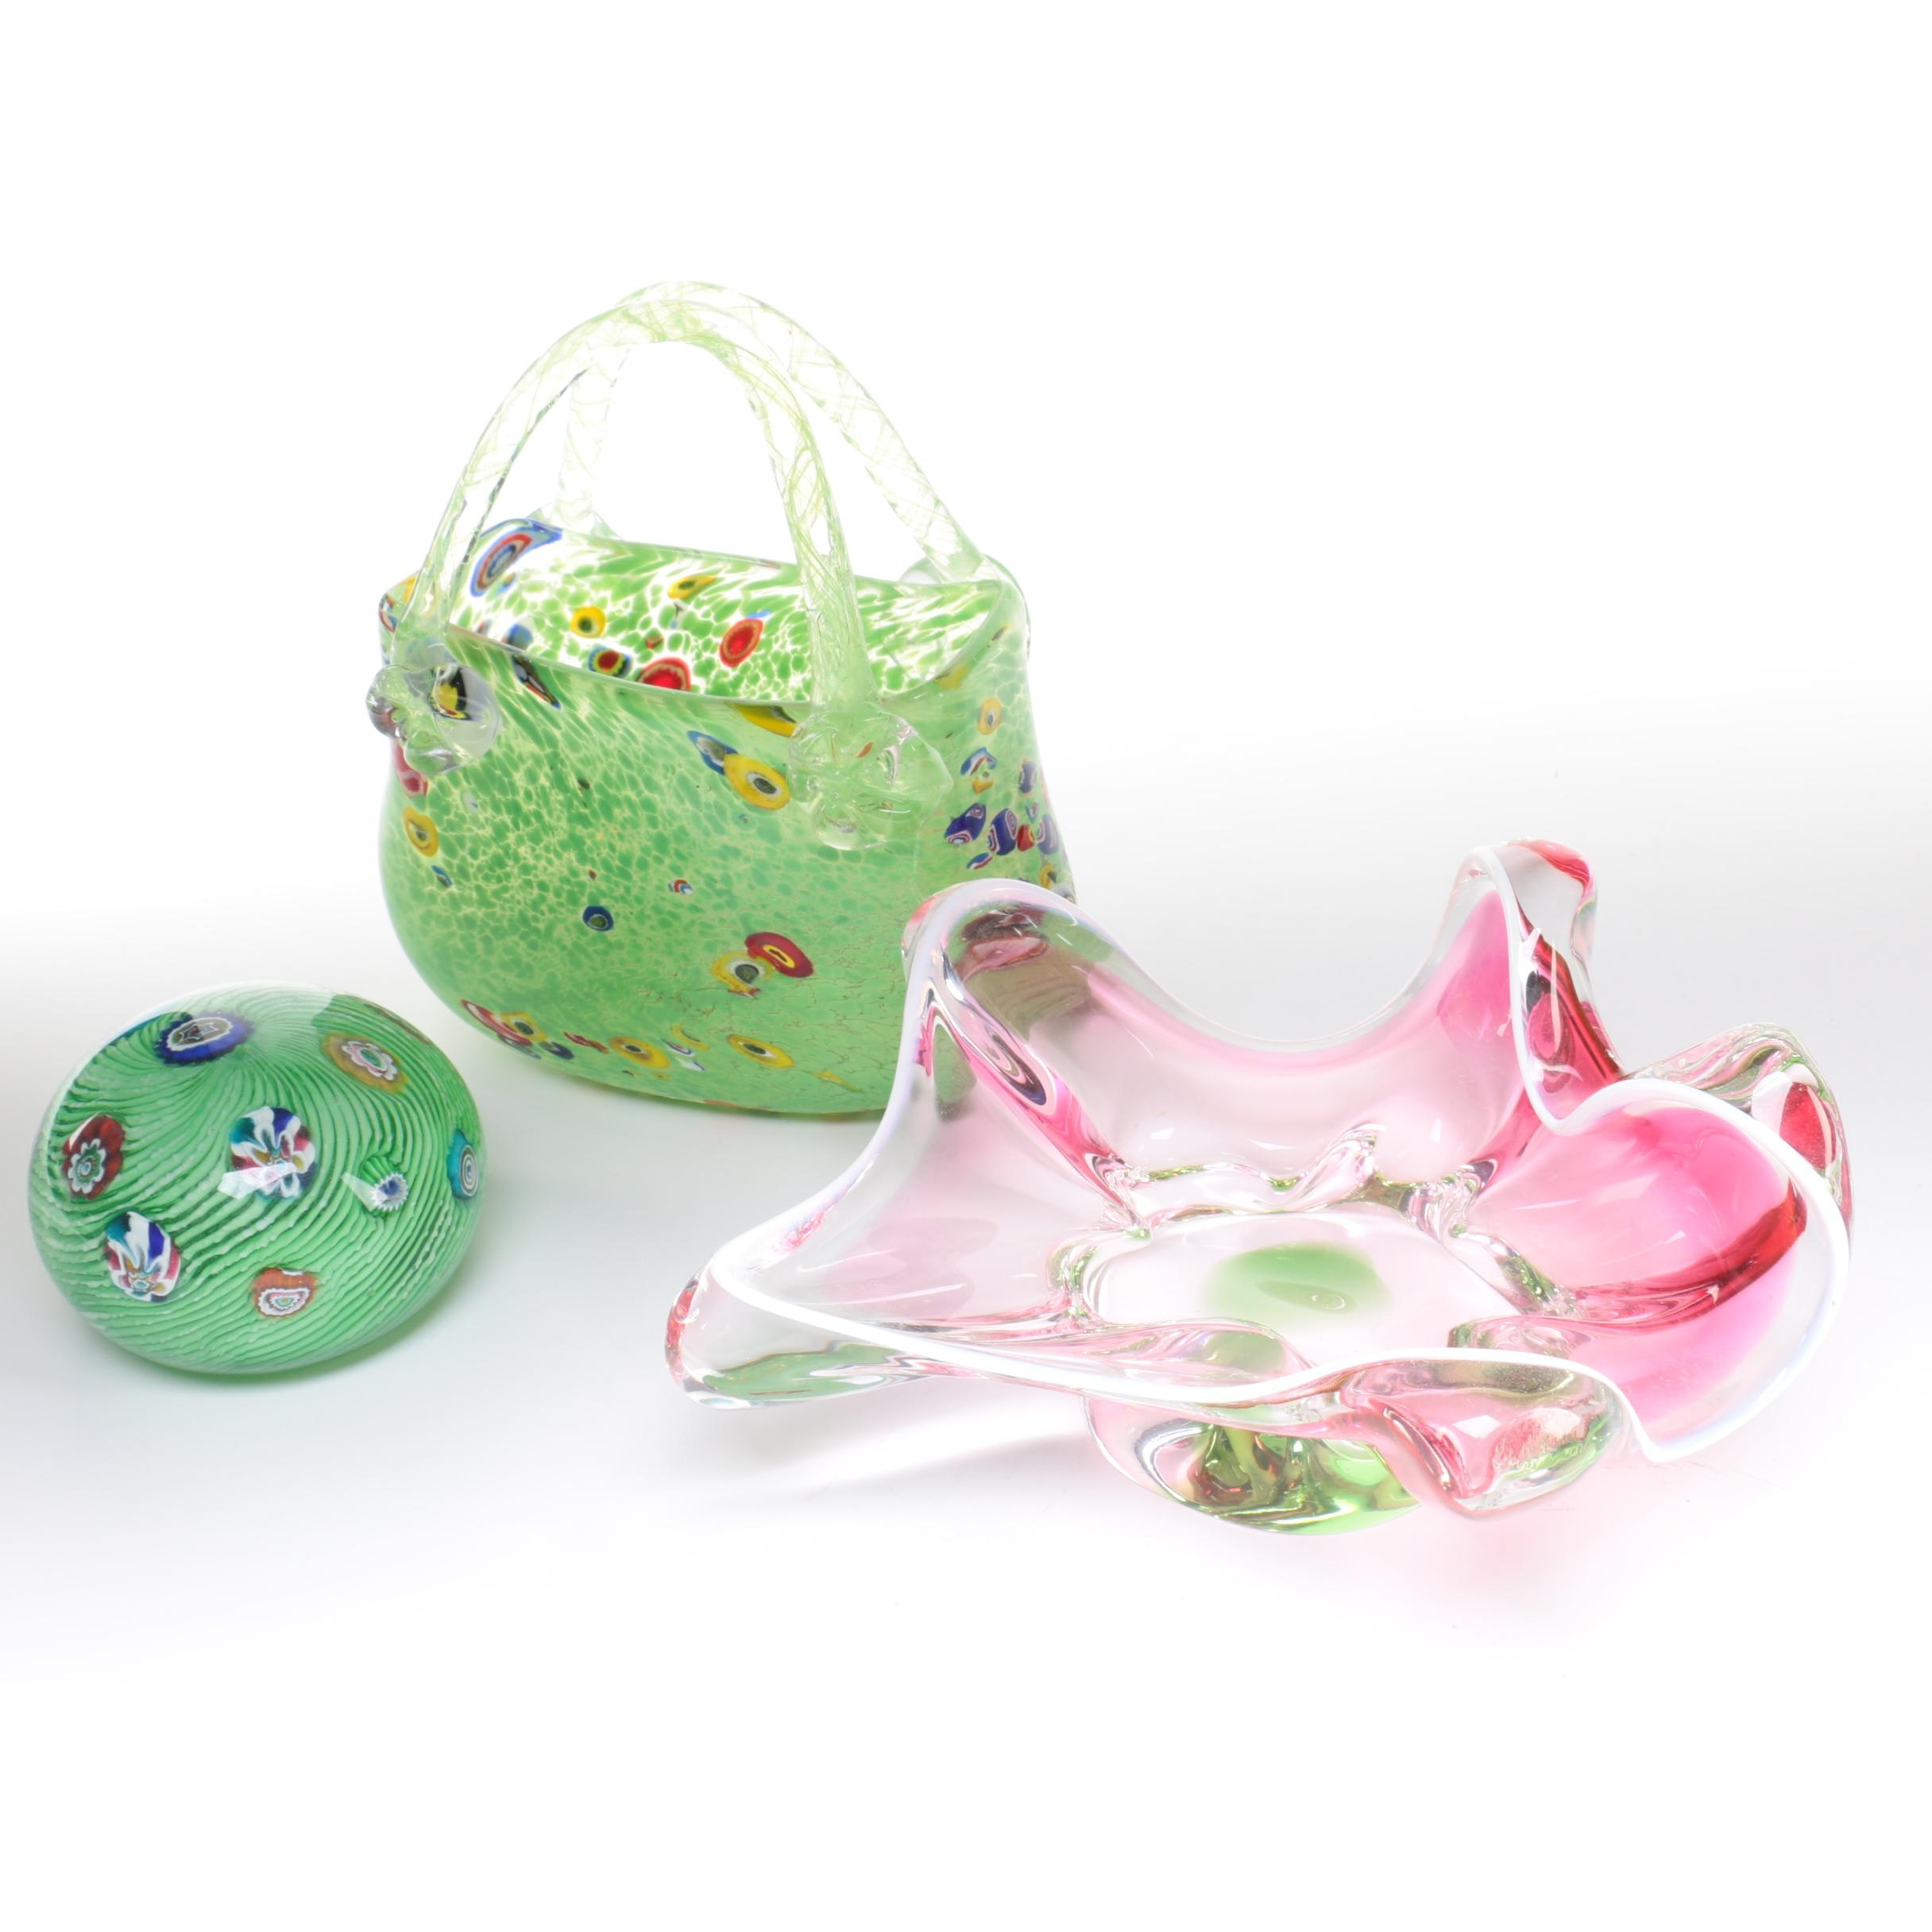 Hand Blown Murano Style Art Glass Paperweight, Purse, and Freeform Bowl